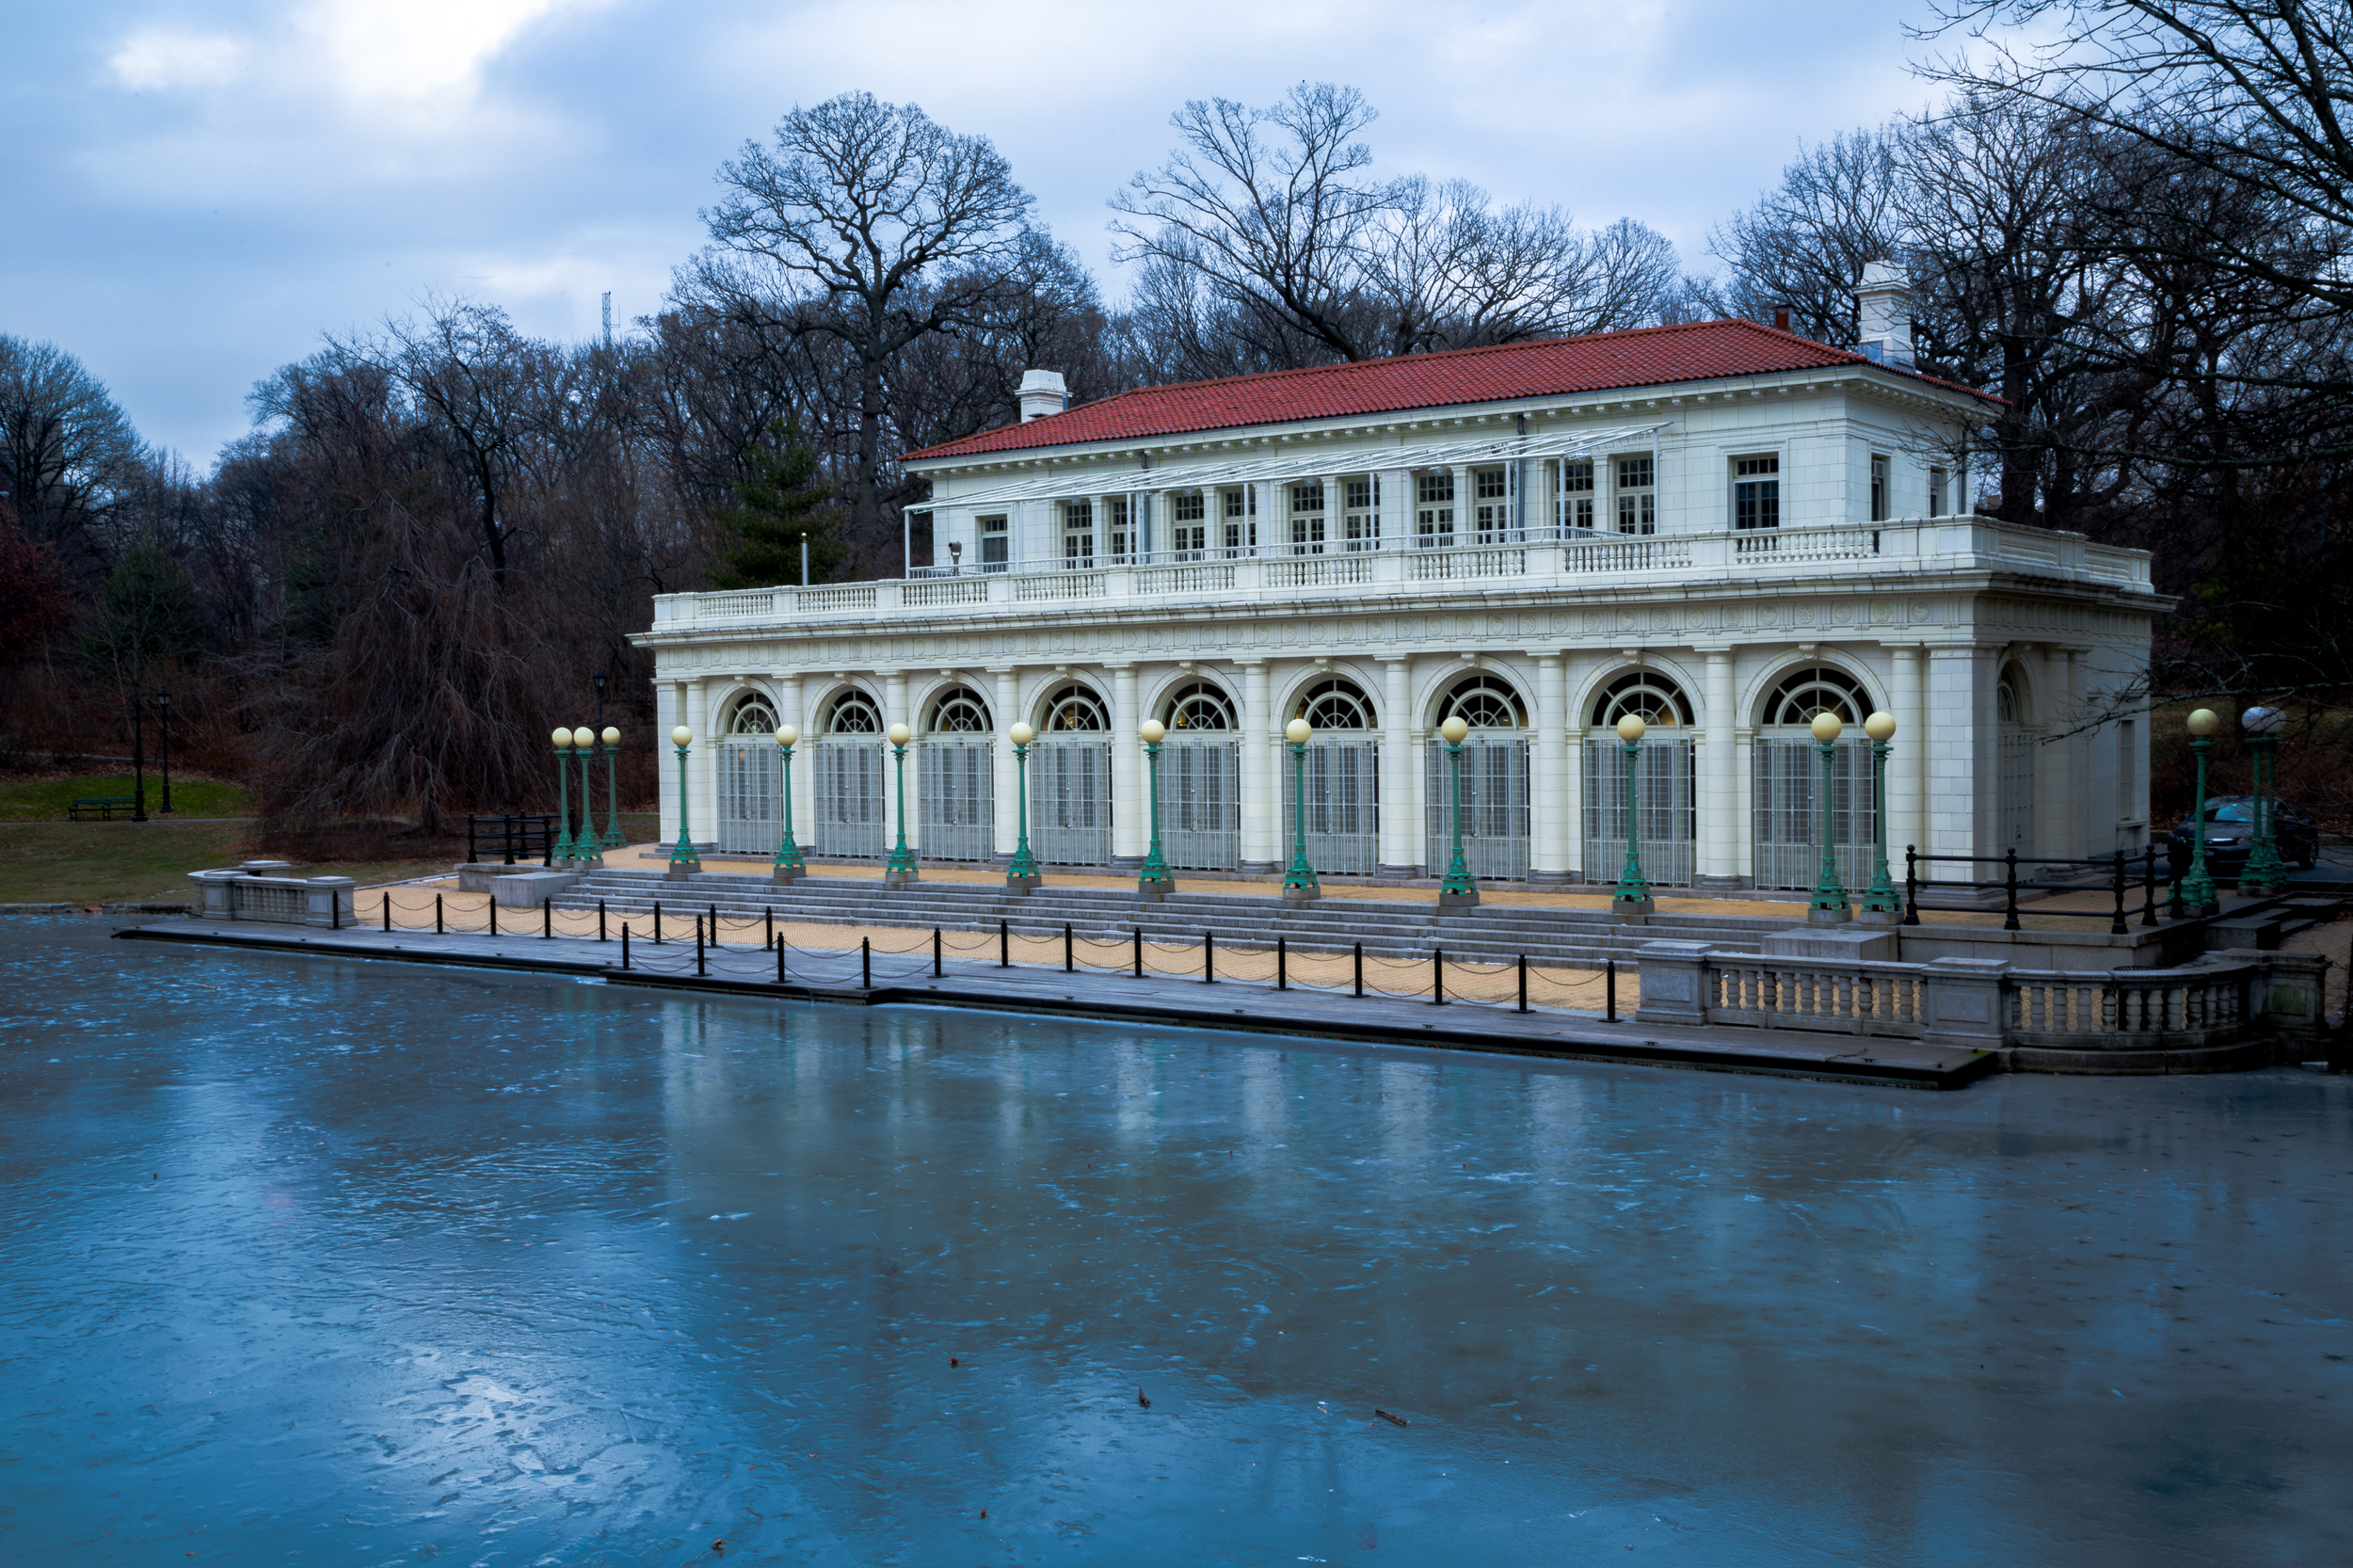 Prospect Park Boat House - Winter